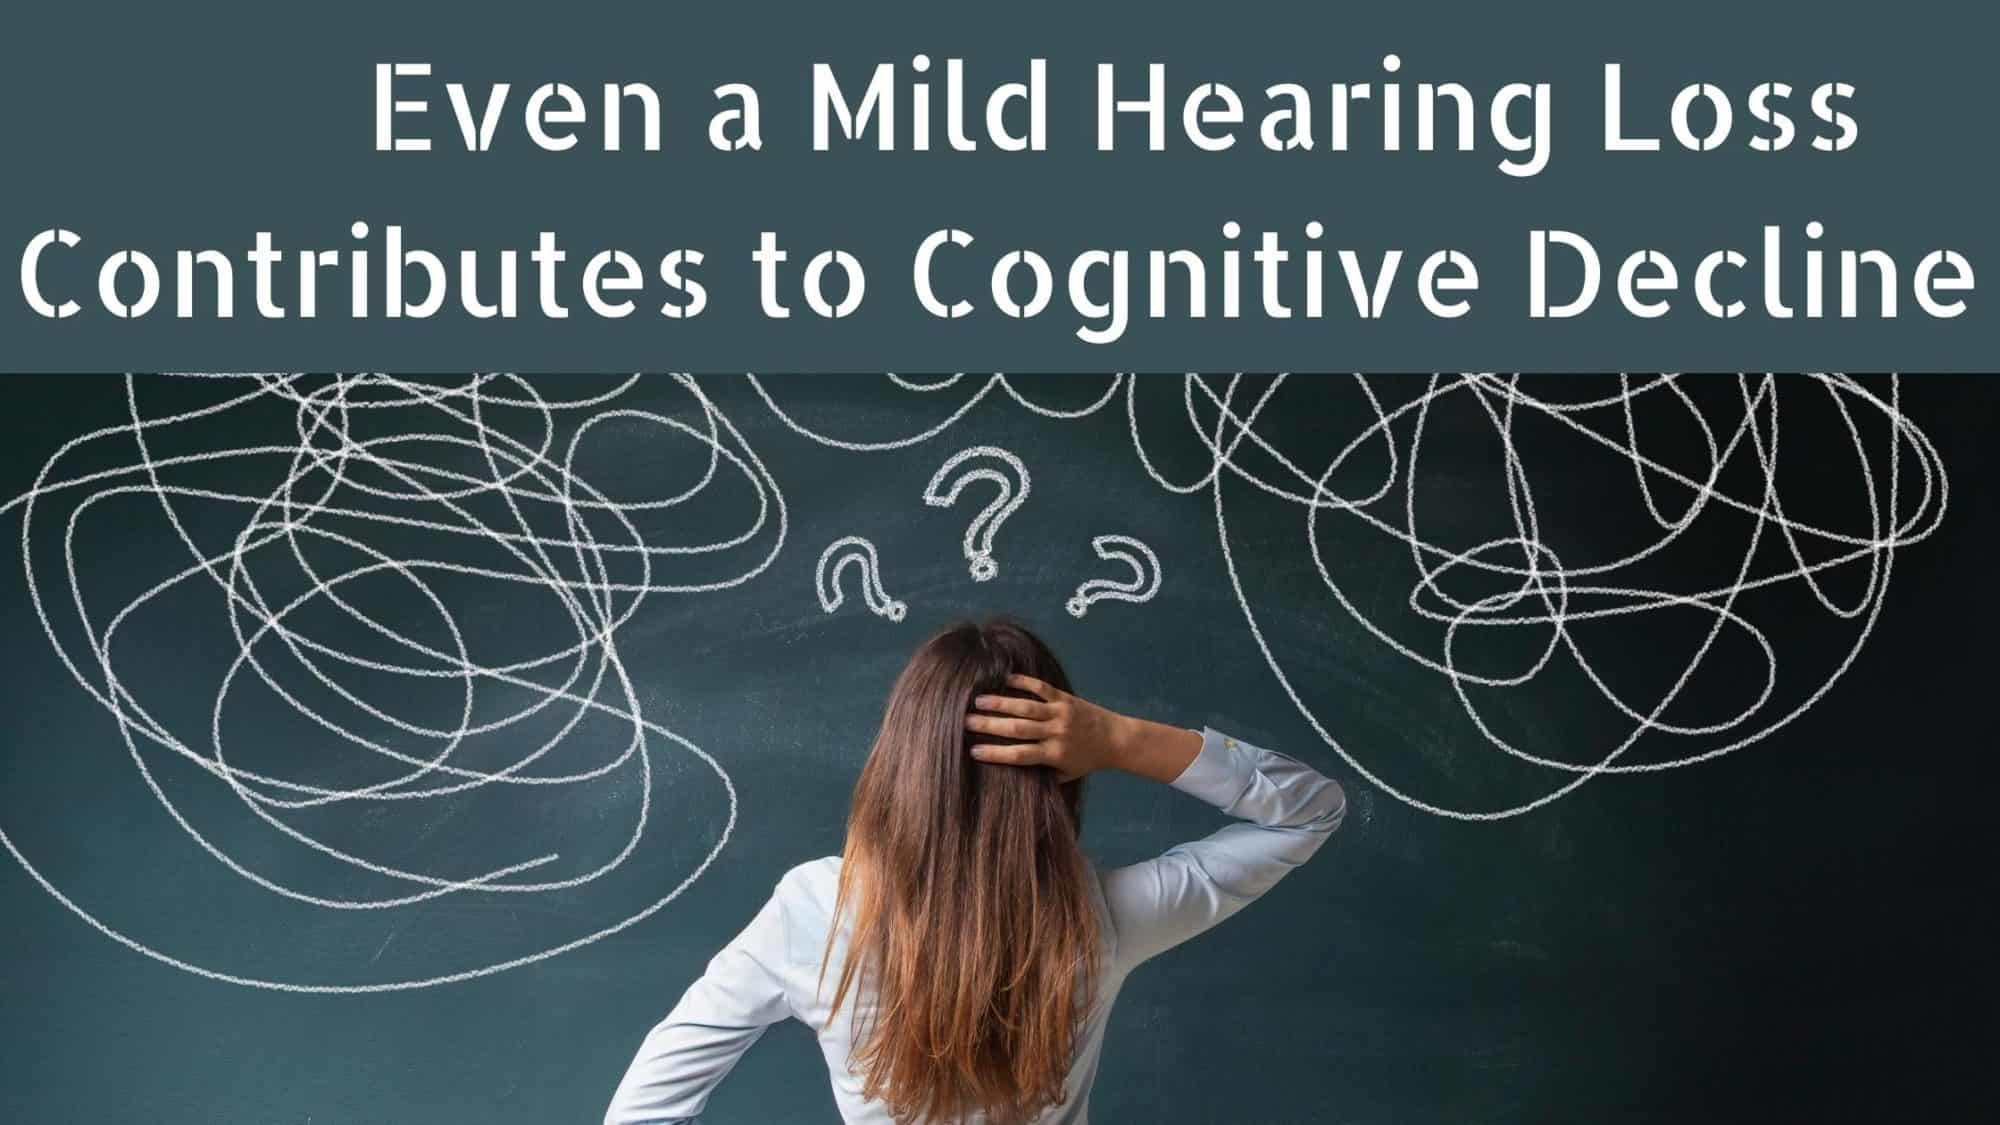 Even a Mild Hearing Loss Contributes to Cognitive Decline